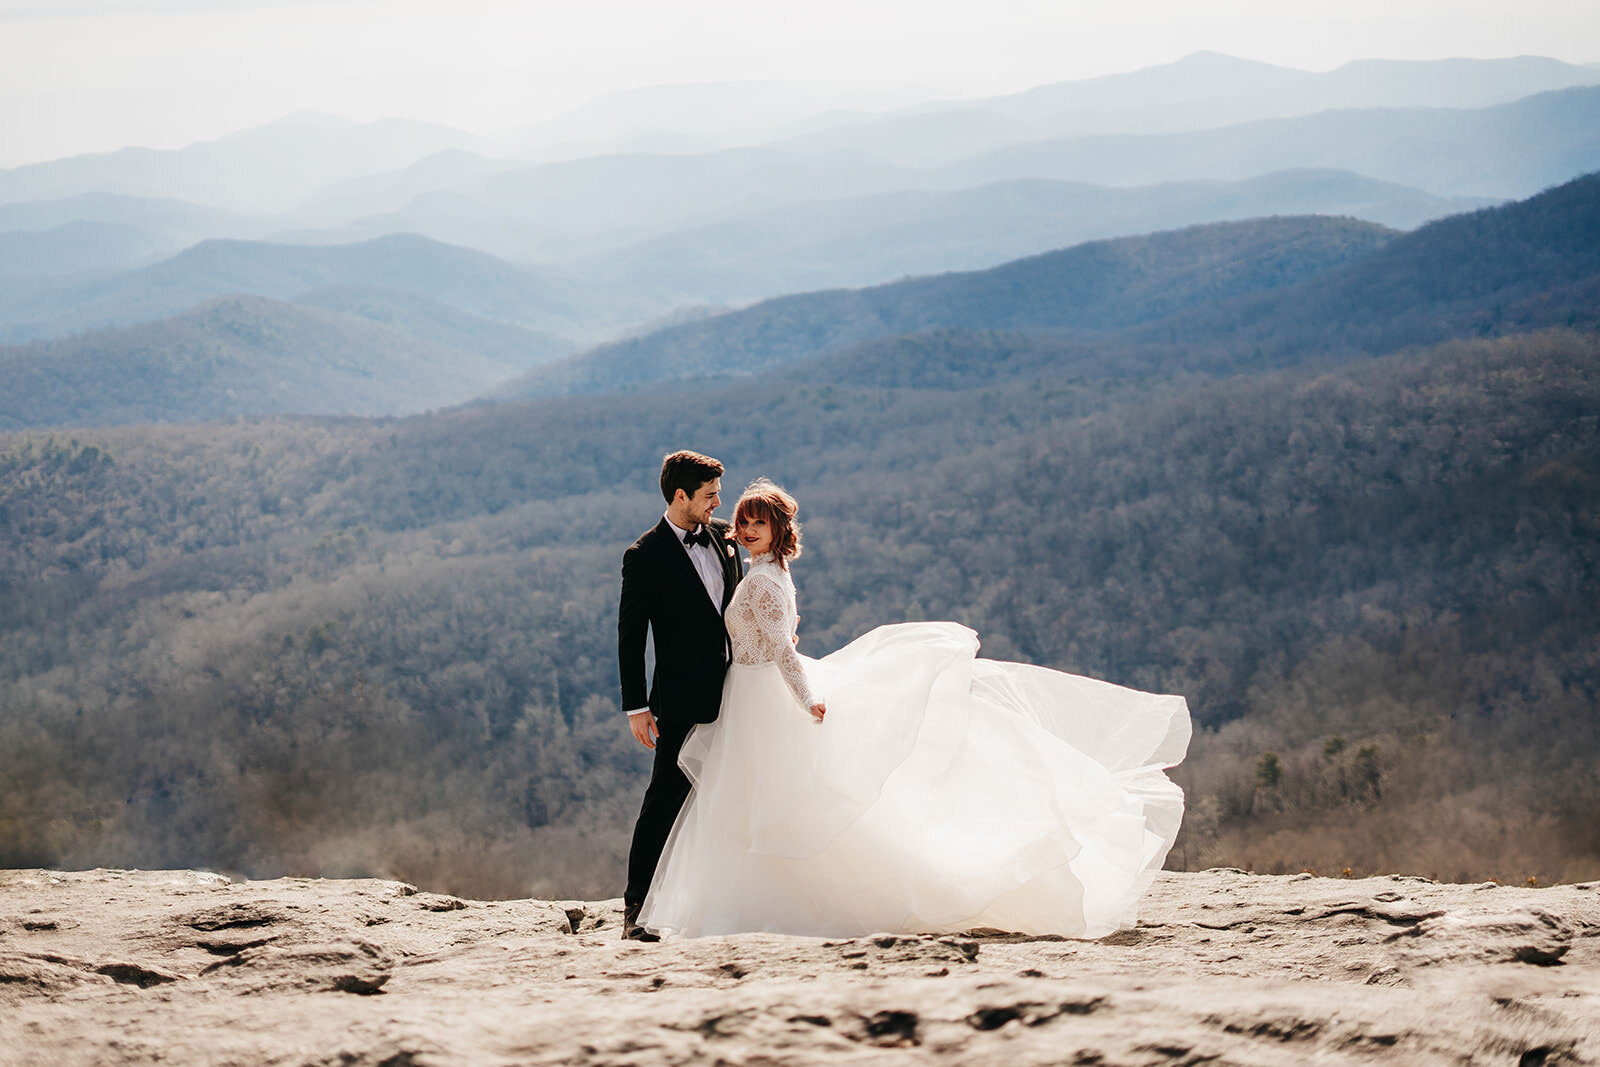 Haley + Josiah Boone Elopement1MercyPhotography_websize